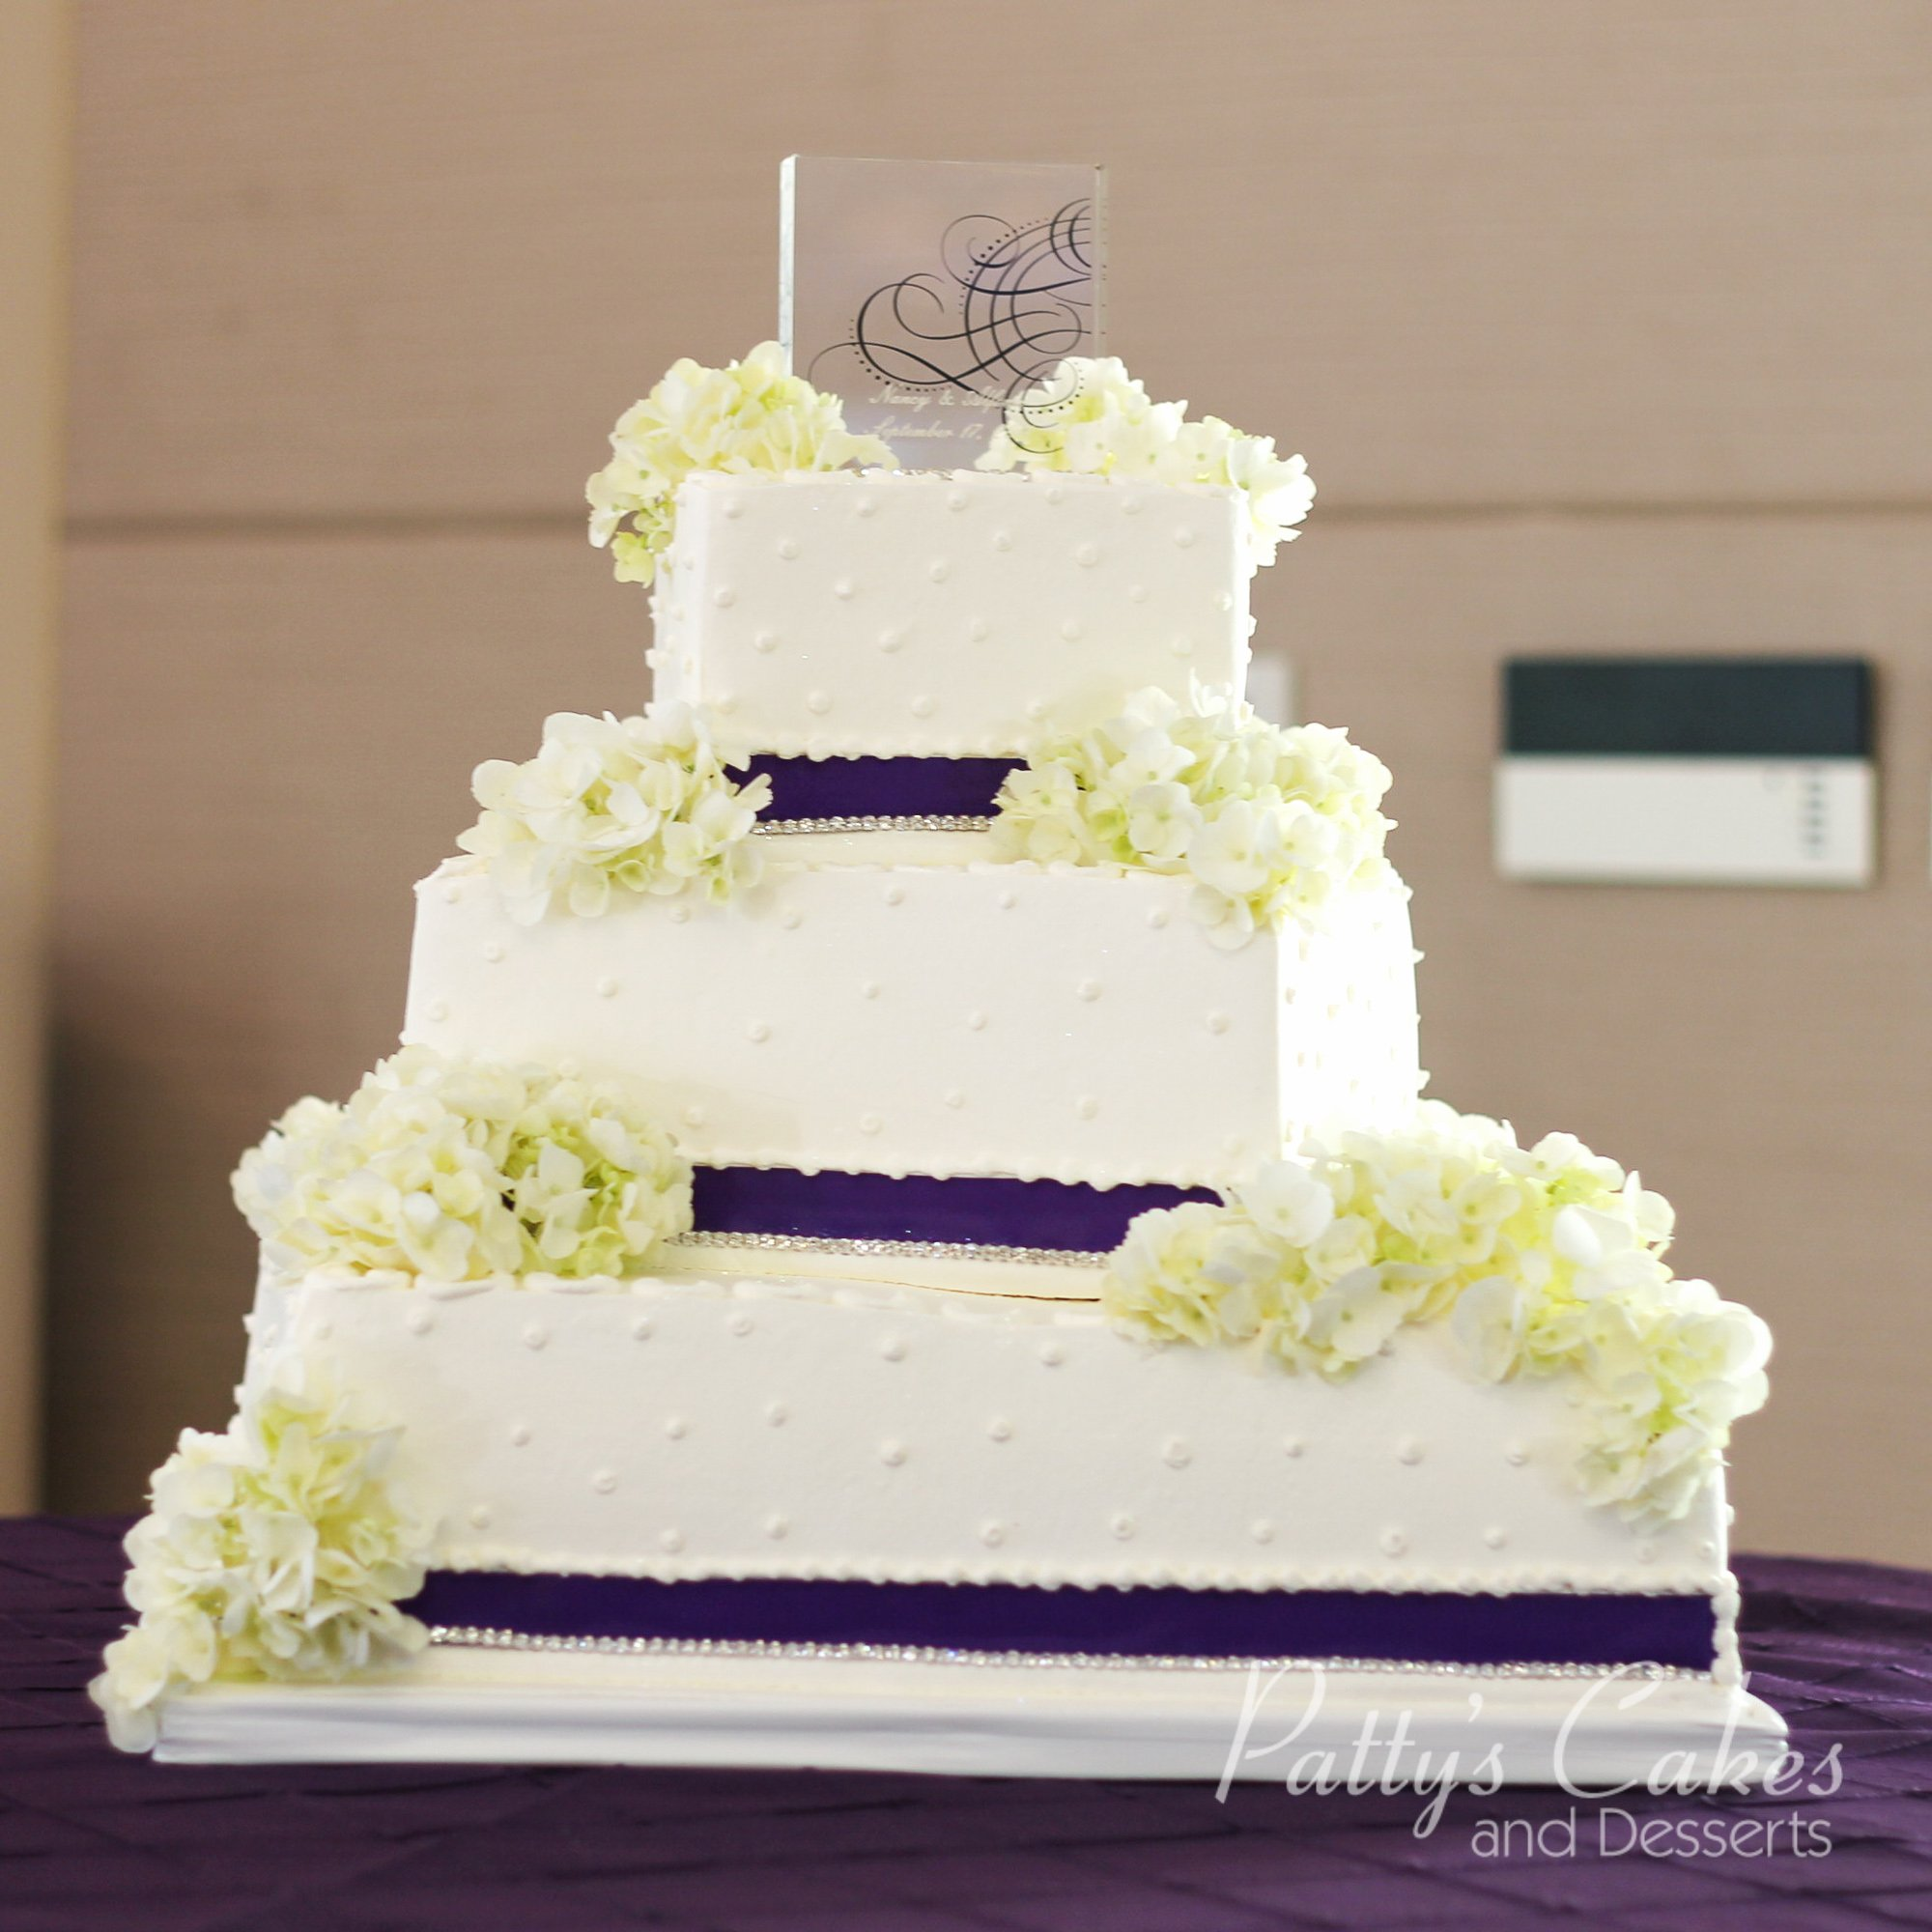 wedding cakes square photo of a wedding cake square purple ribbon flowers 25520